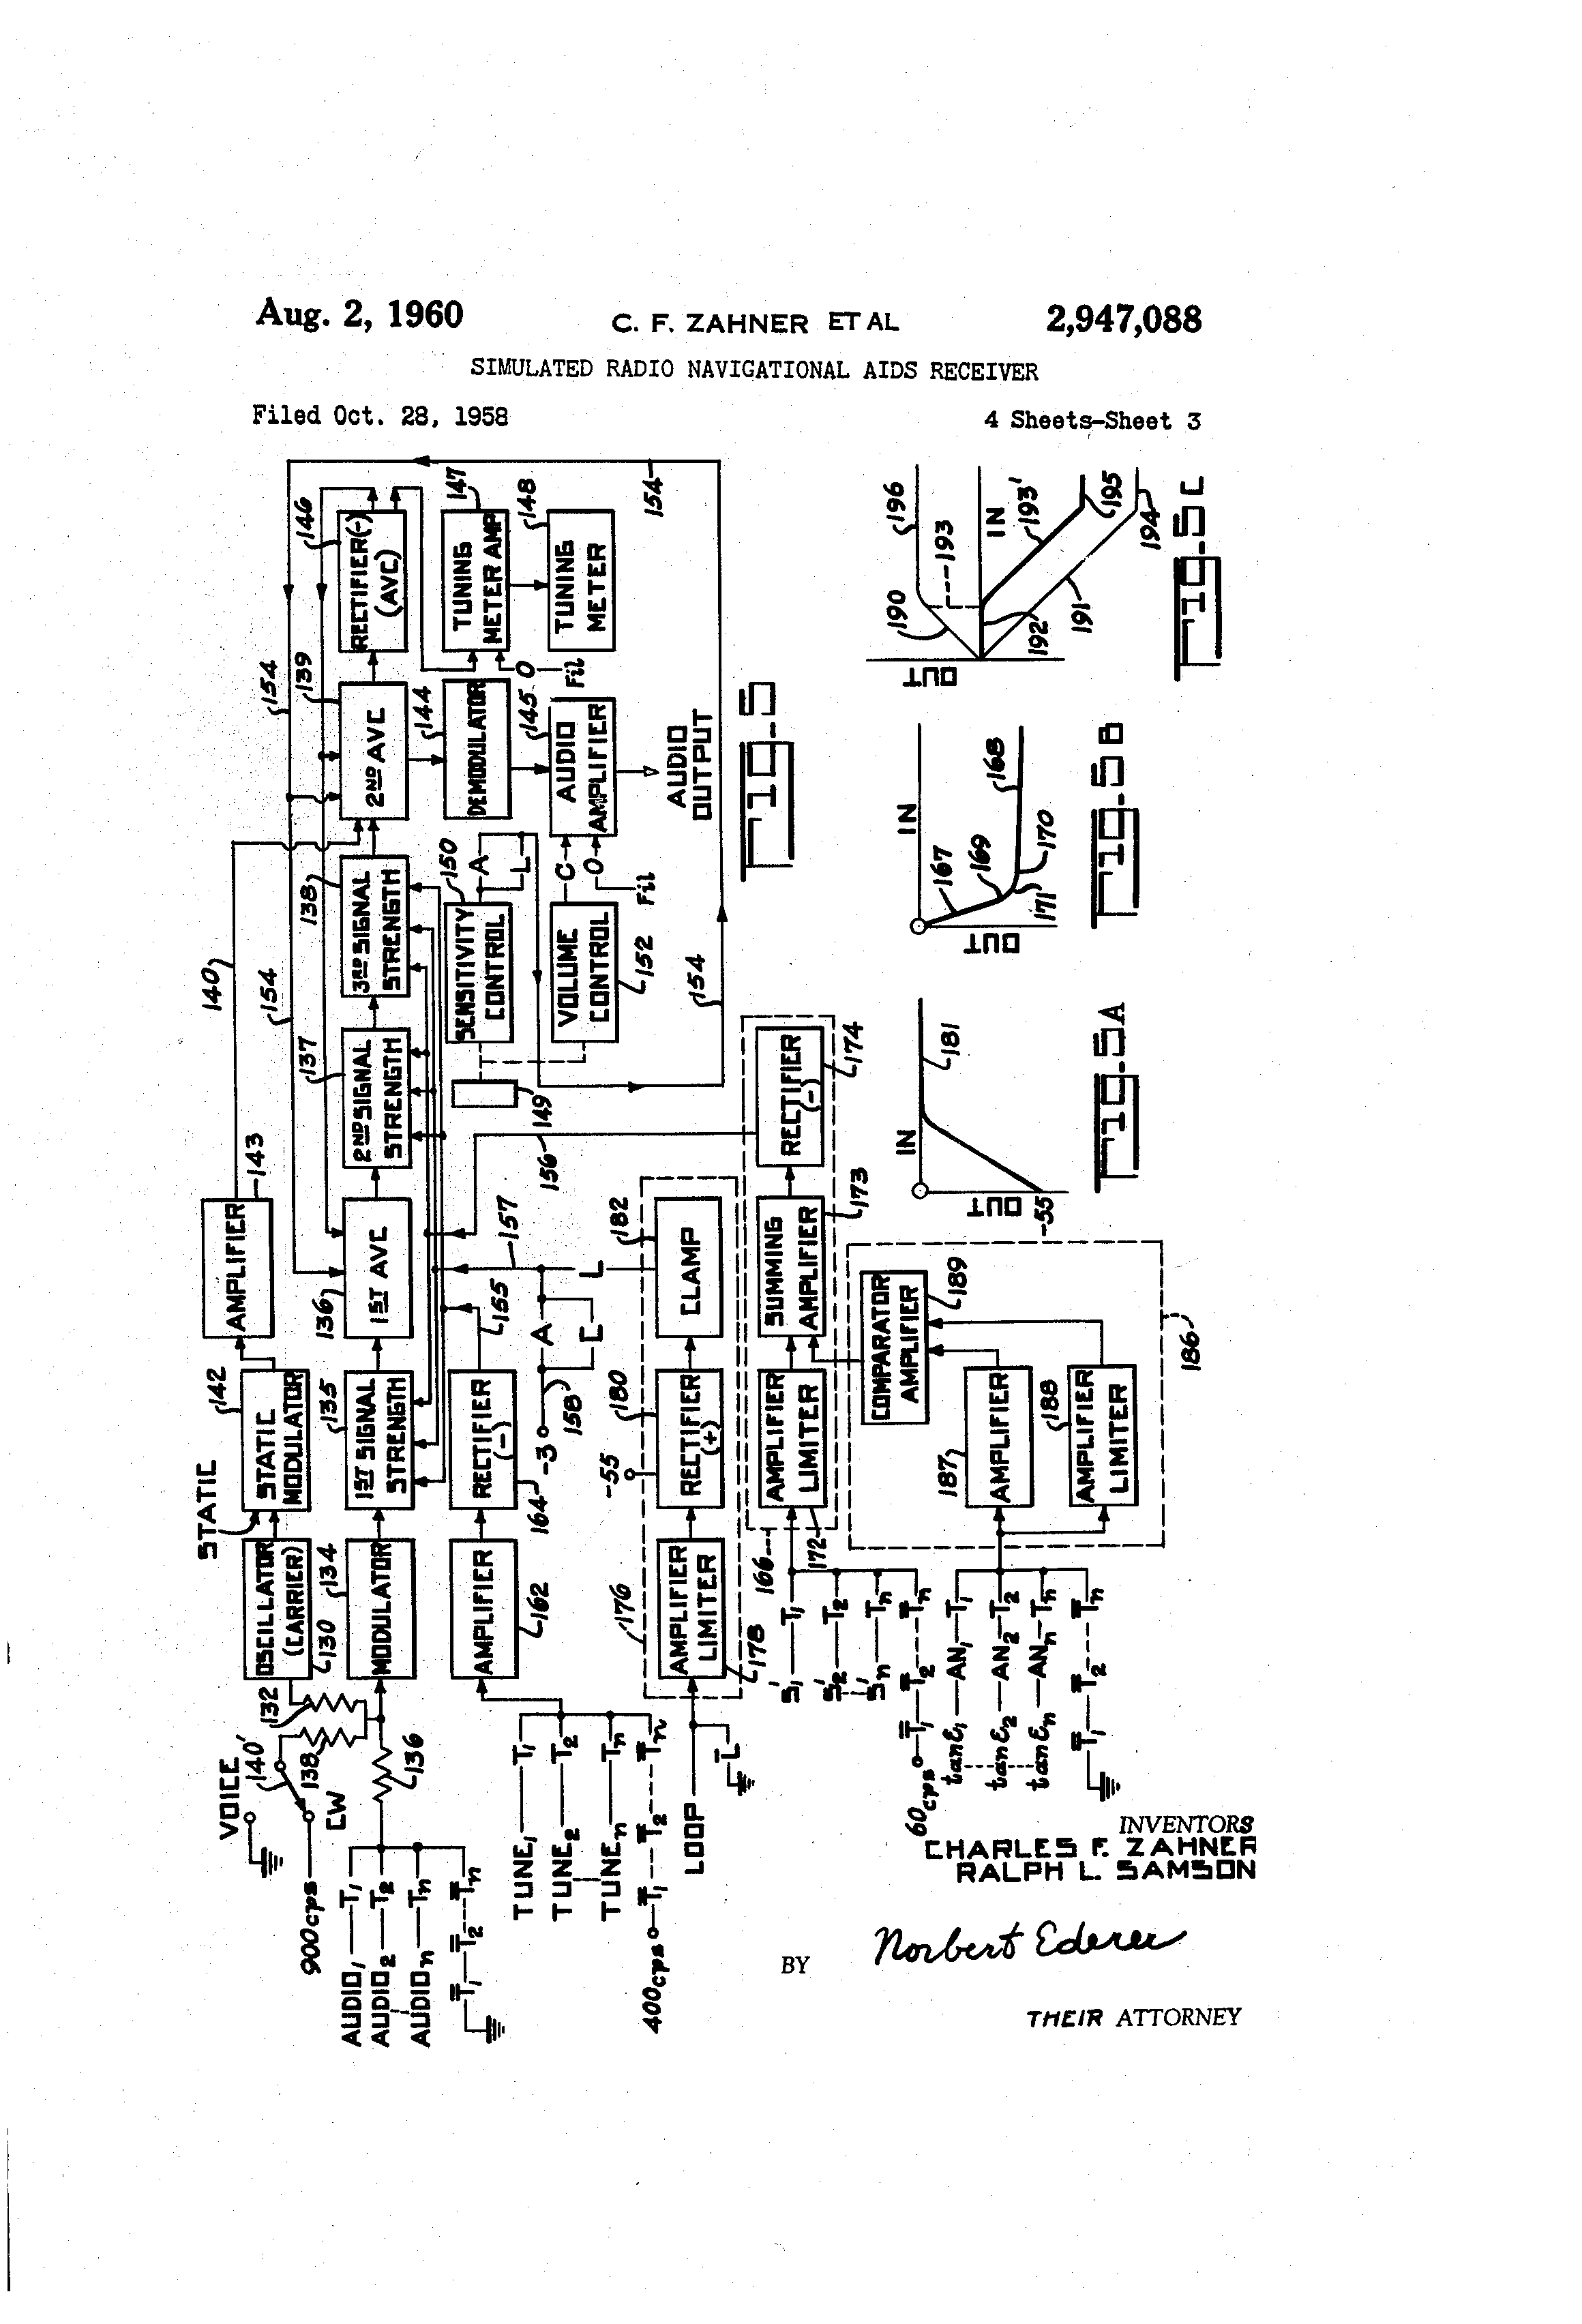 patent us2947088 - simulated radio navigational aids receiver